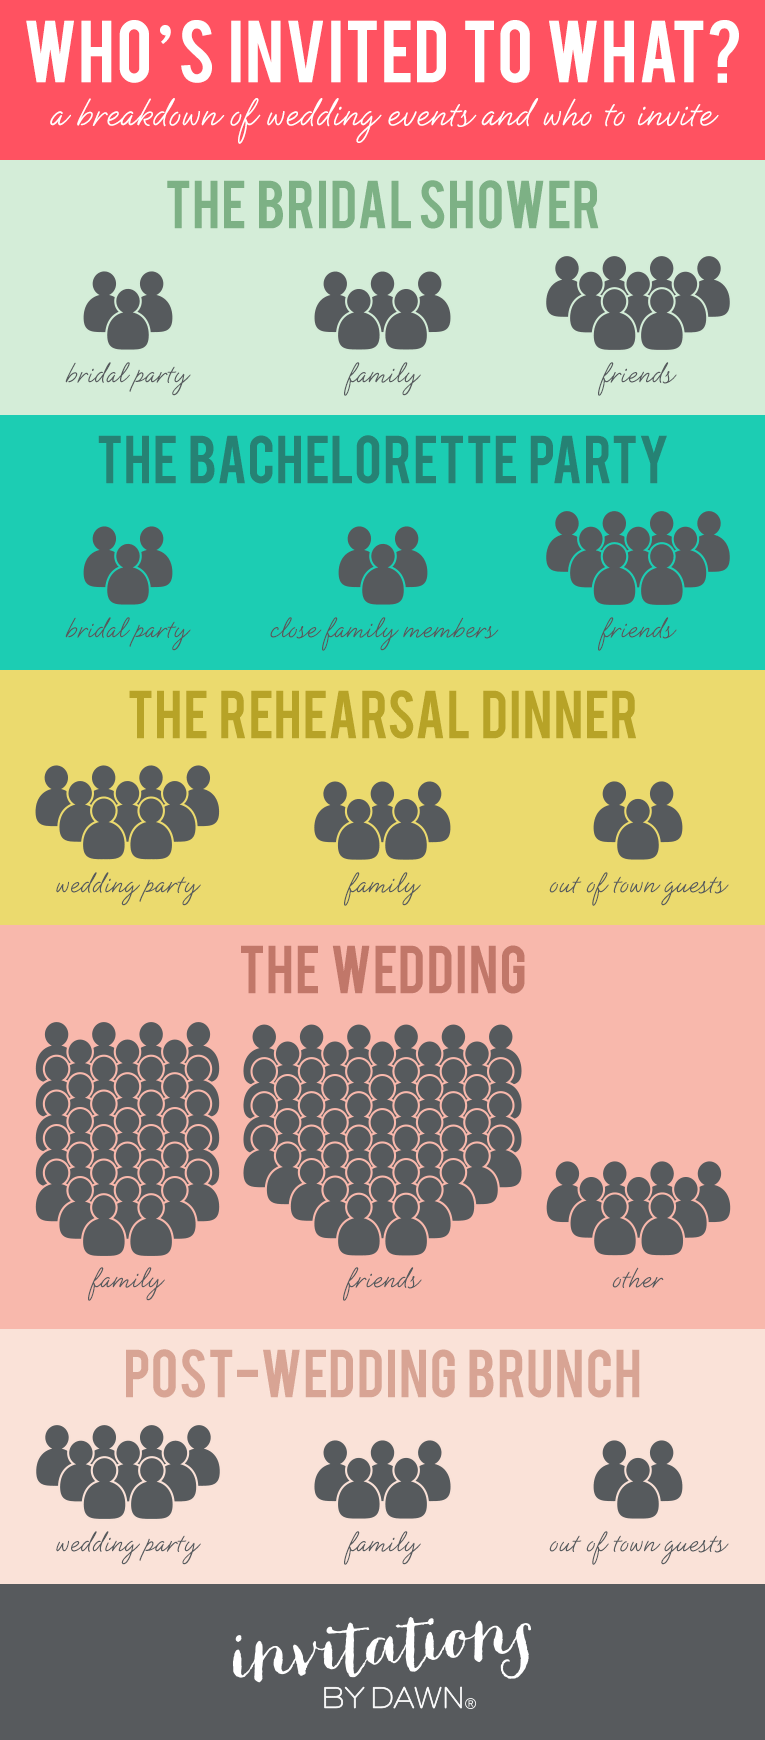 A wedding guest break-down of who's invited to what